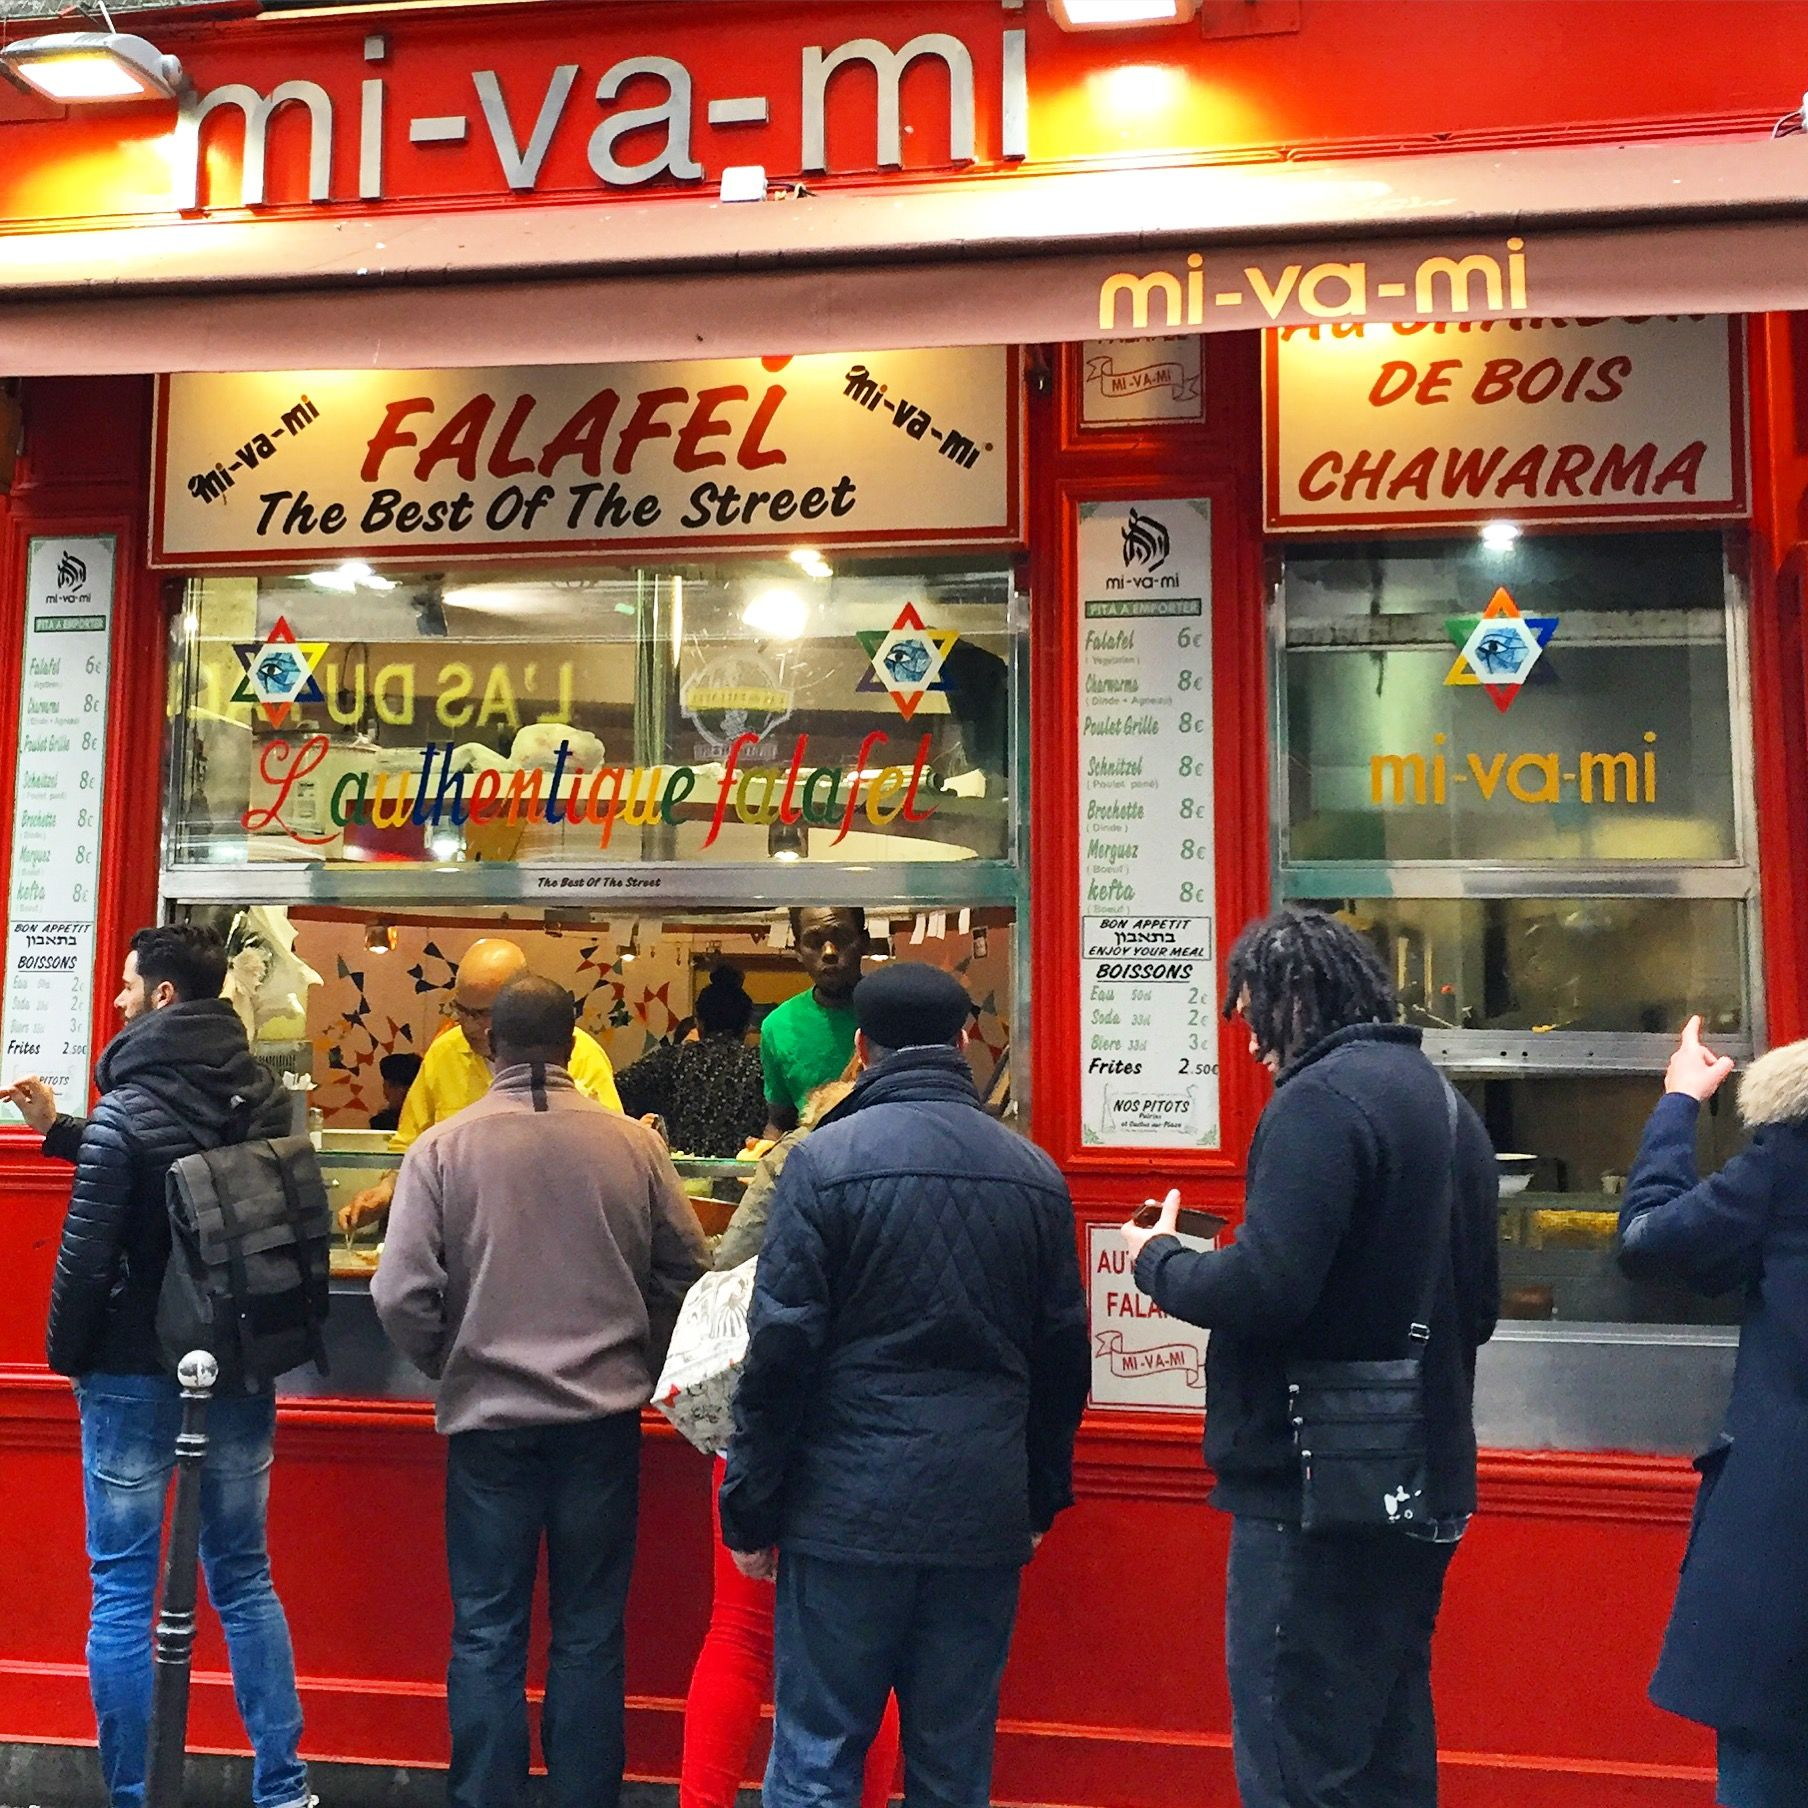 Best Jewish Falafel Kebab in Paris ! This is a personal pic :-) I took it! STM